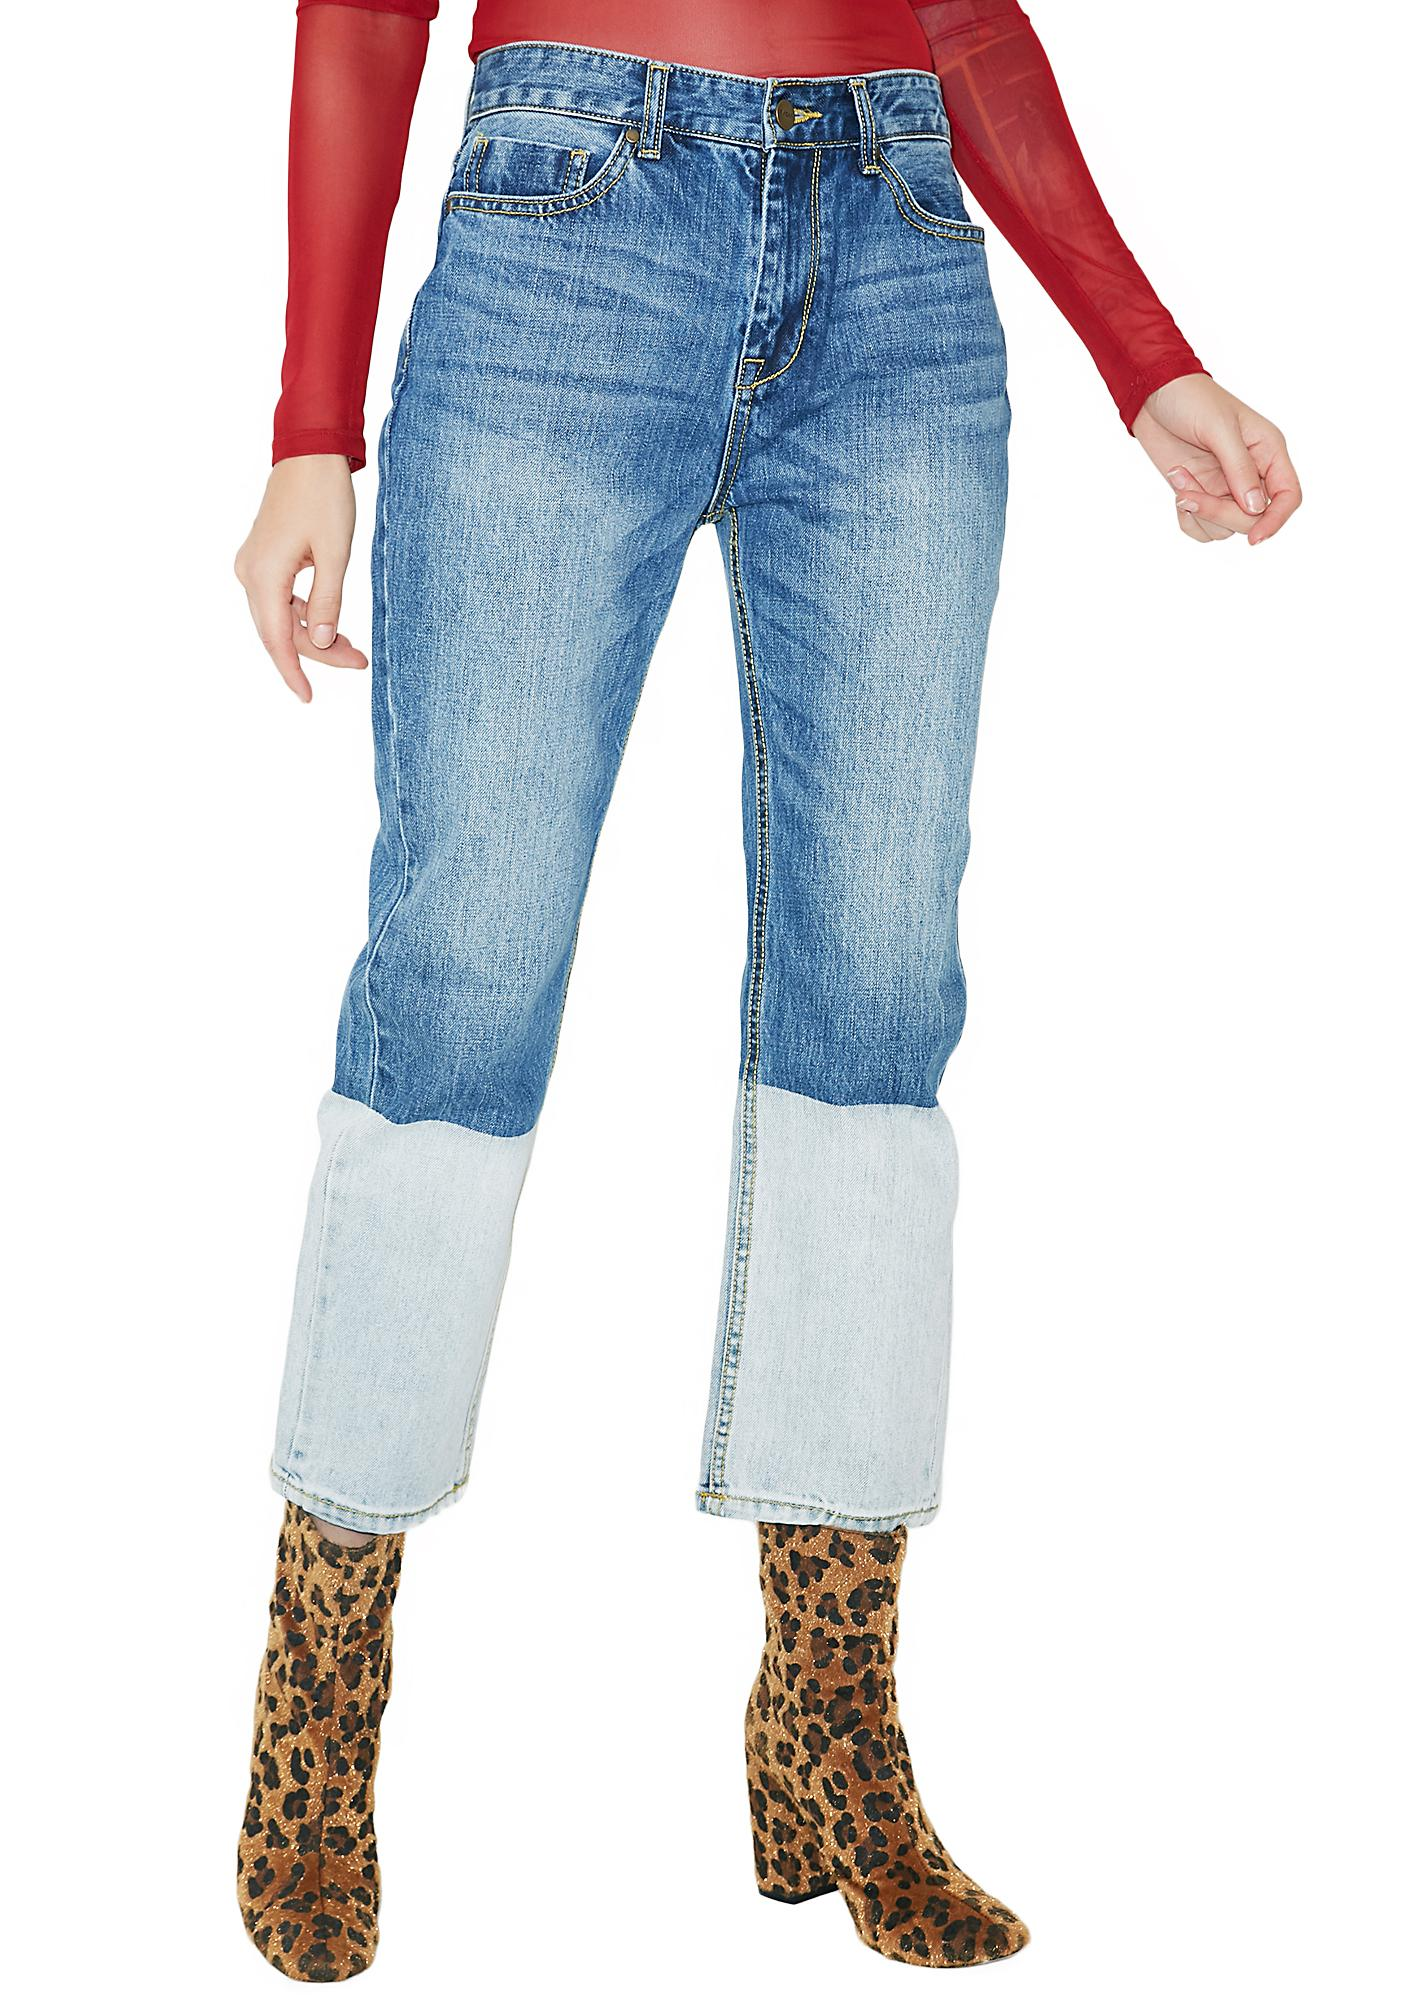 EVIDNT Two Tone Crop Jeans